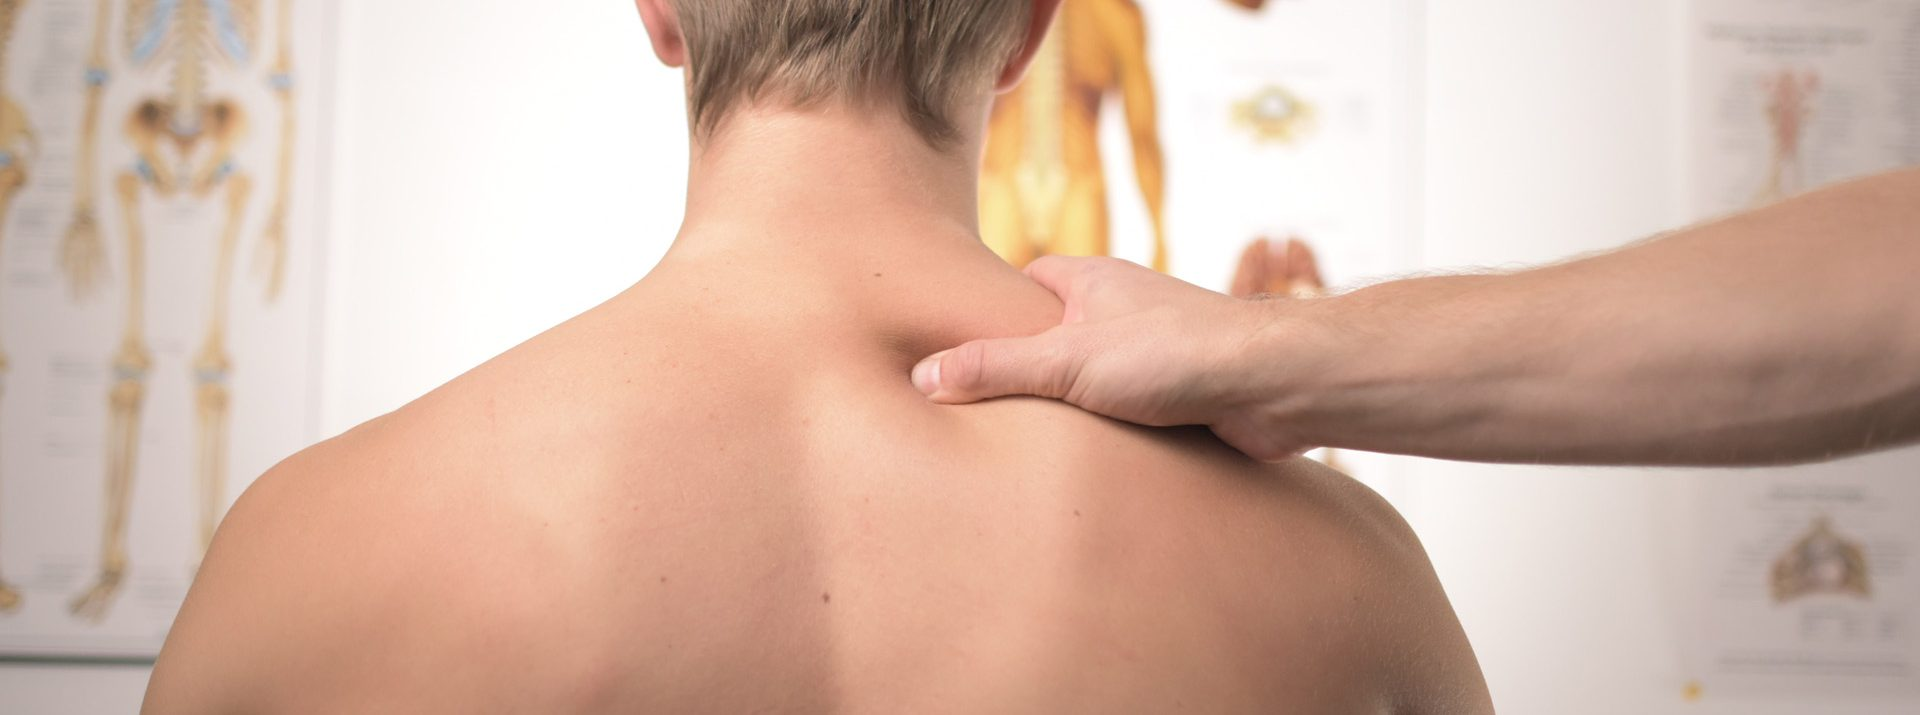 We design physiotherapy services according to your needs.